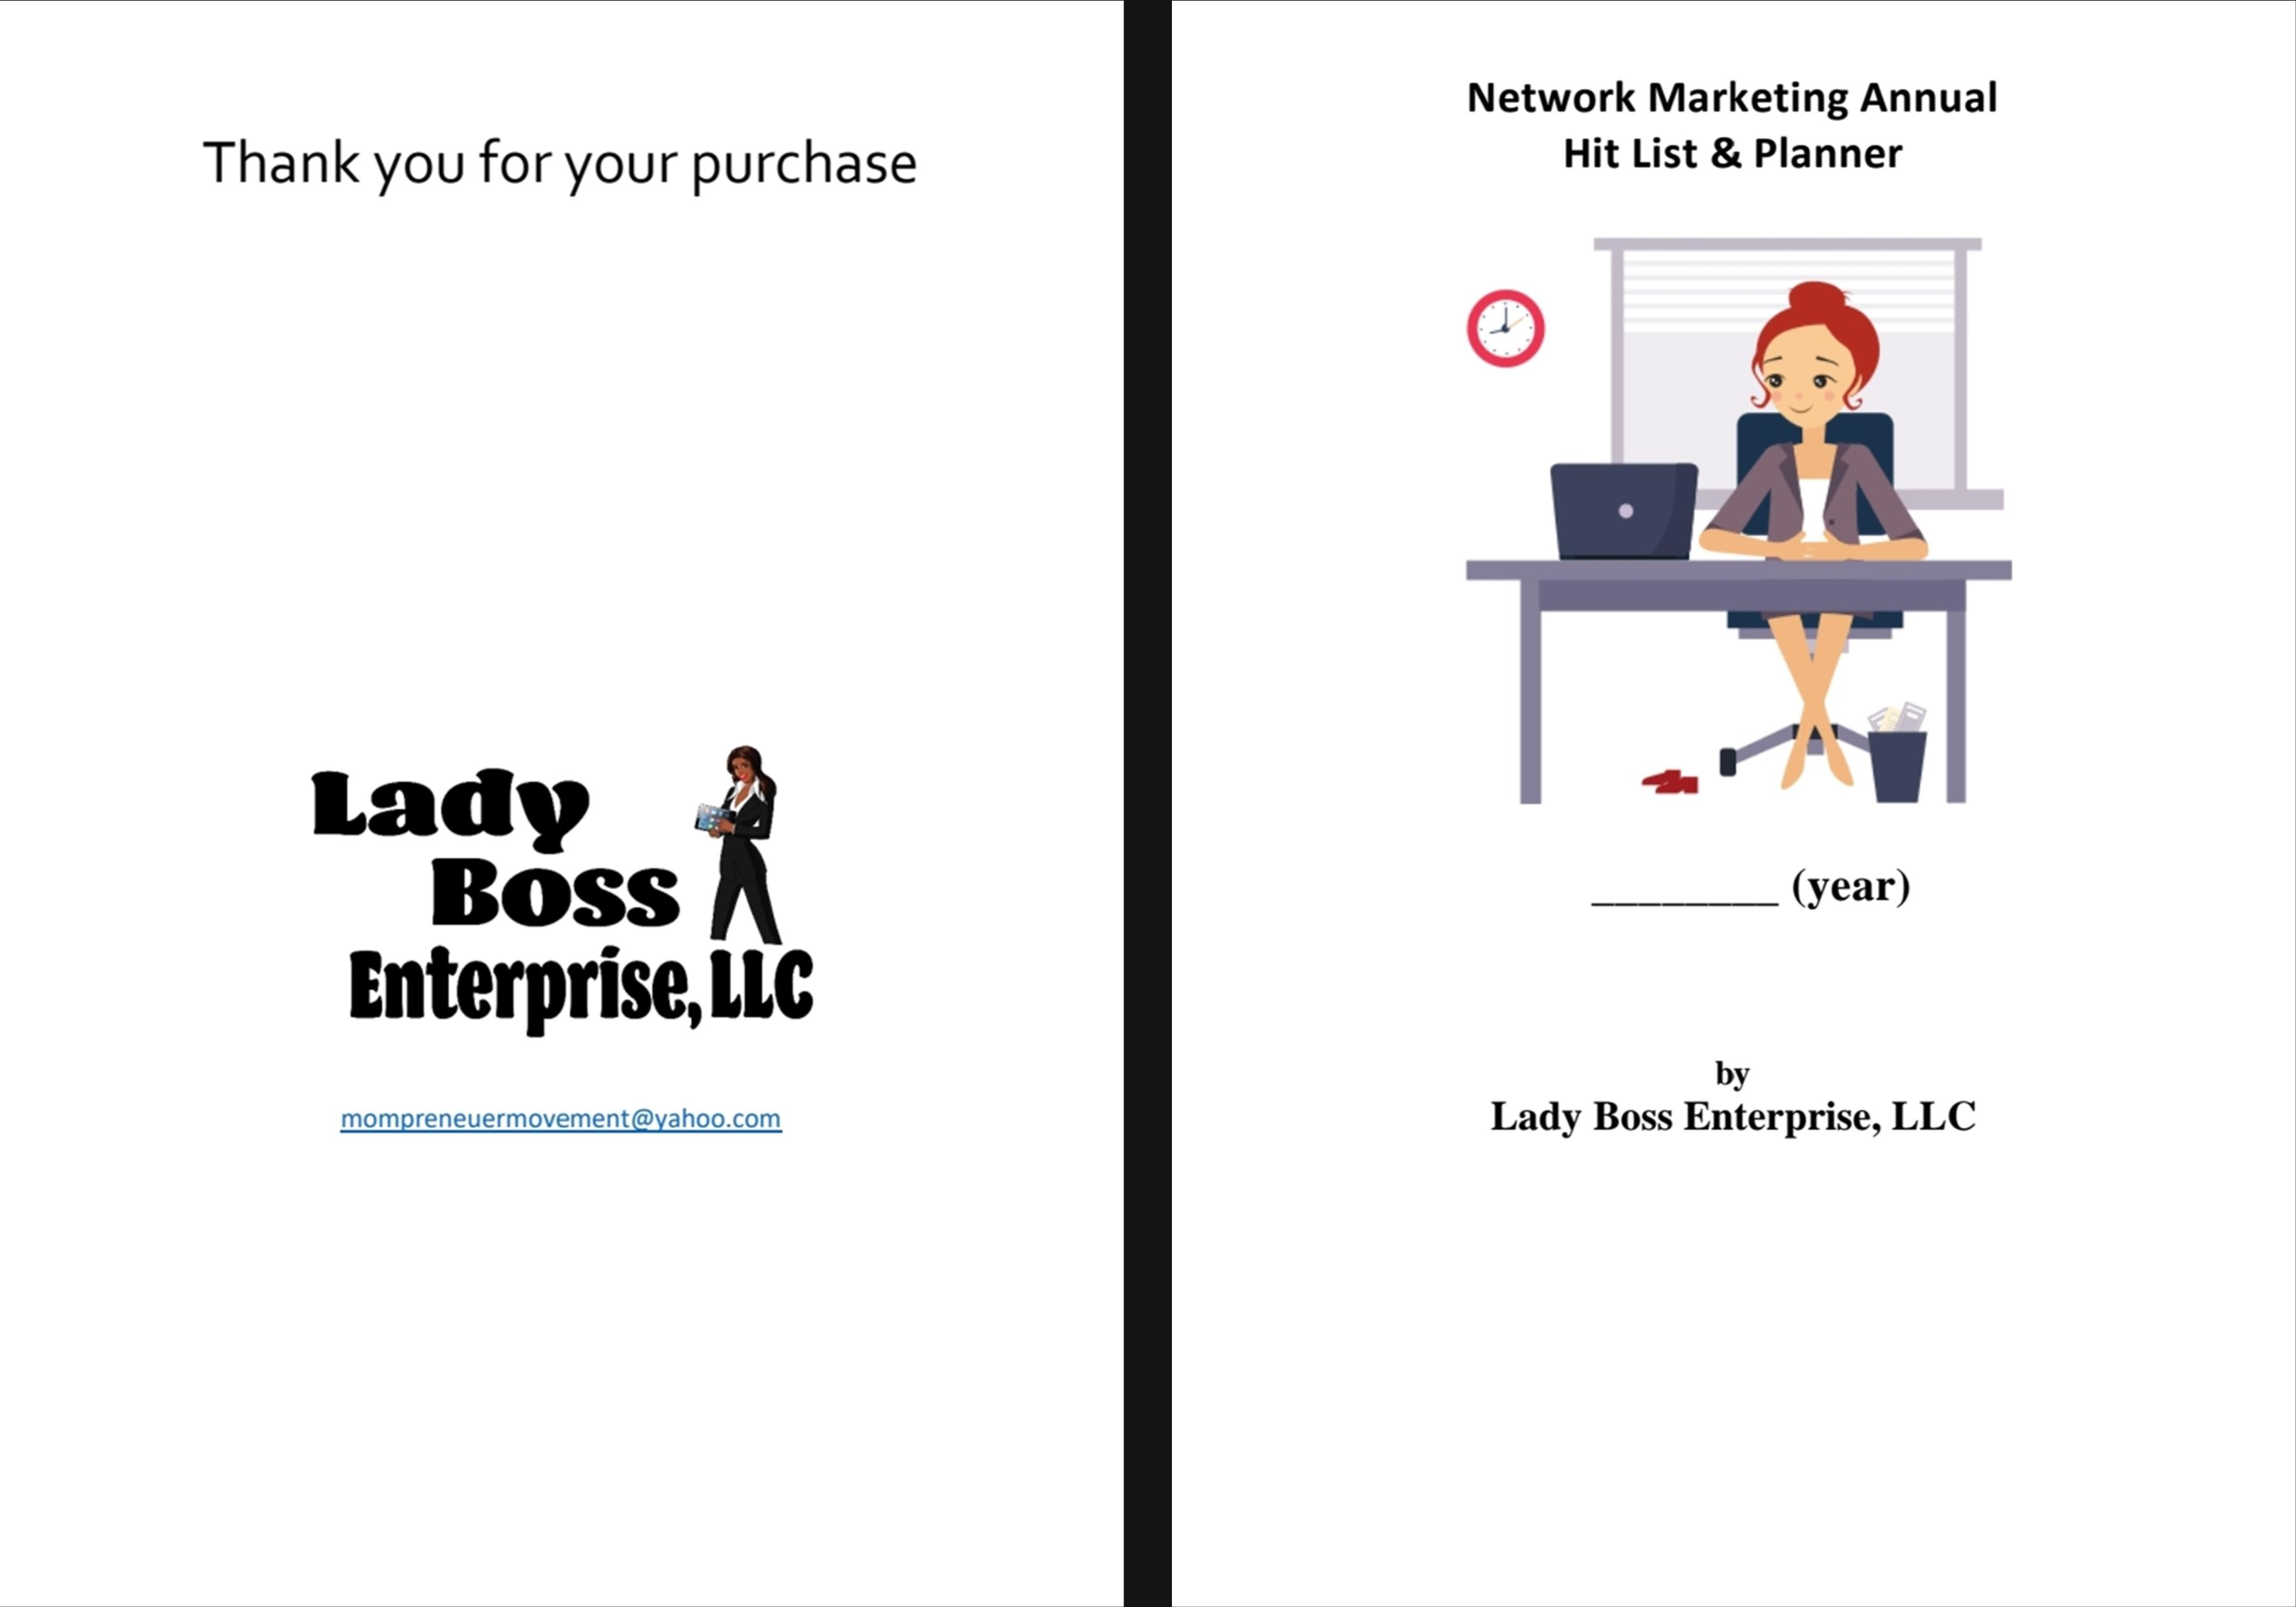 Network Marketing Annual Hit List & Planner cover image